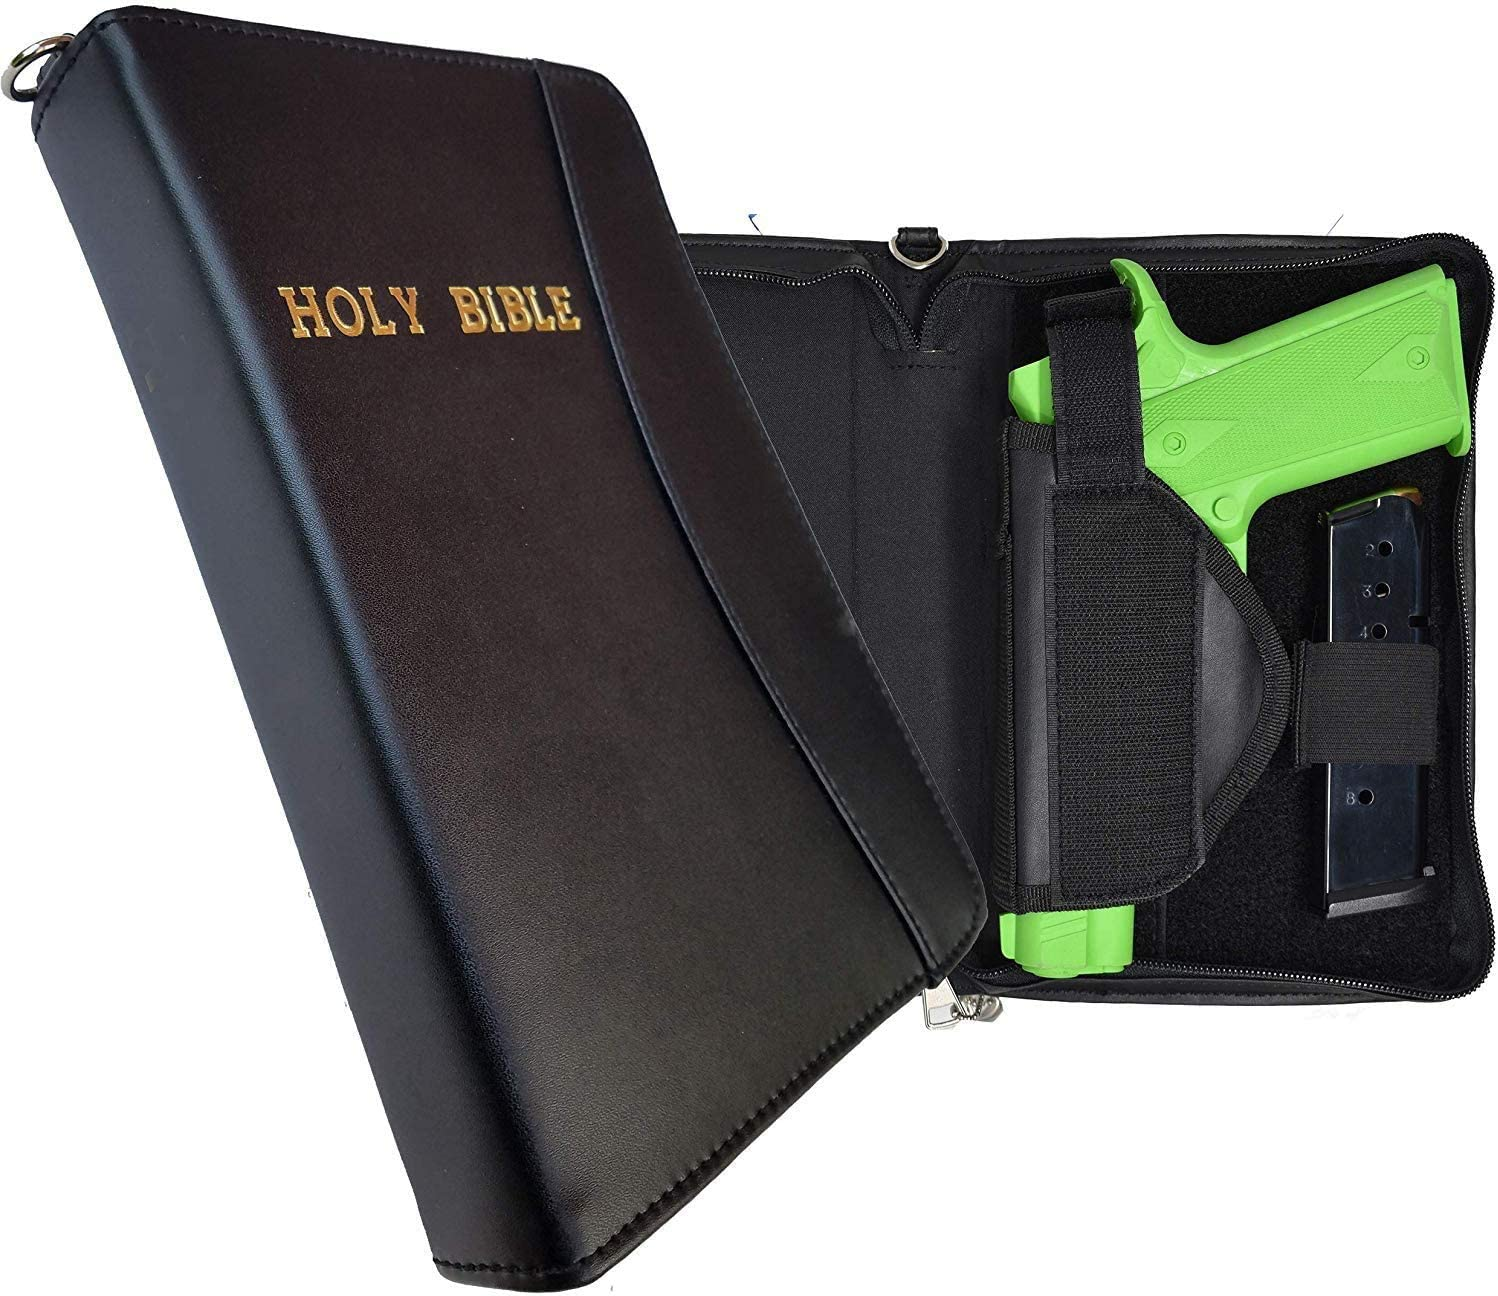 Garrison Challenge the lowest price Grip Soft Leather Excellent Locking Carry for Case Zipper Storage